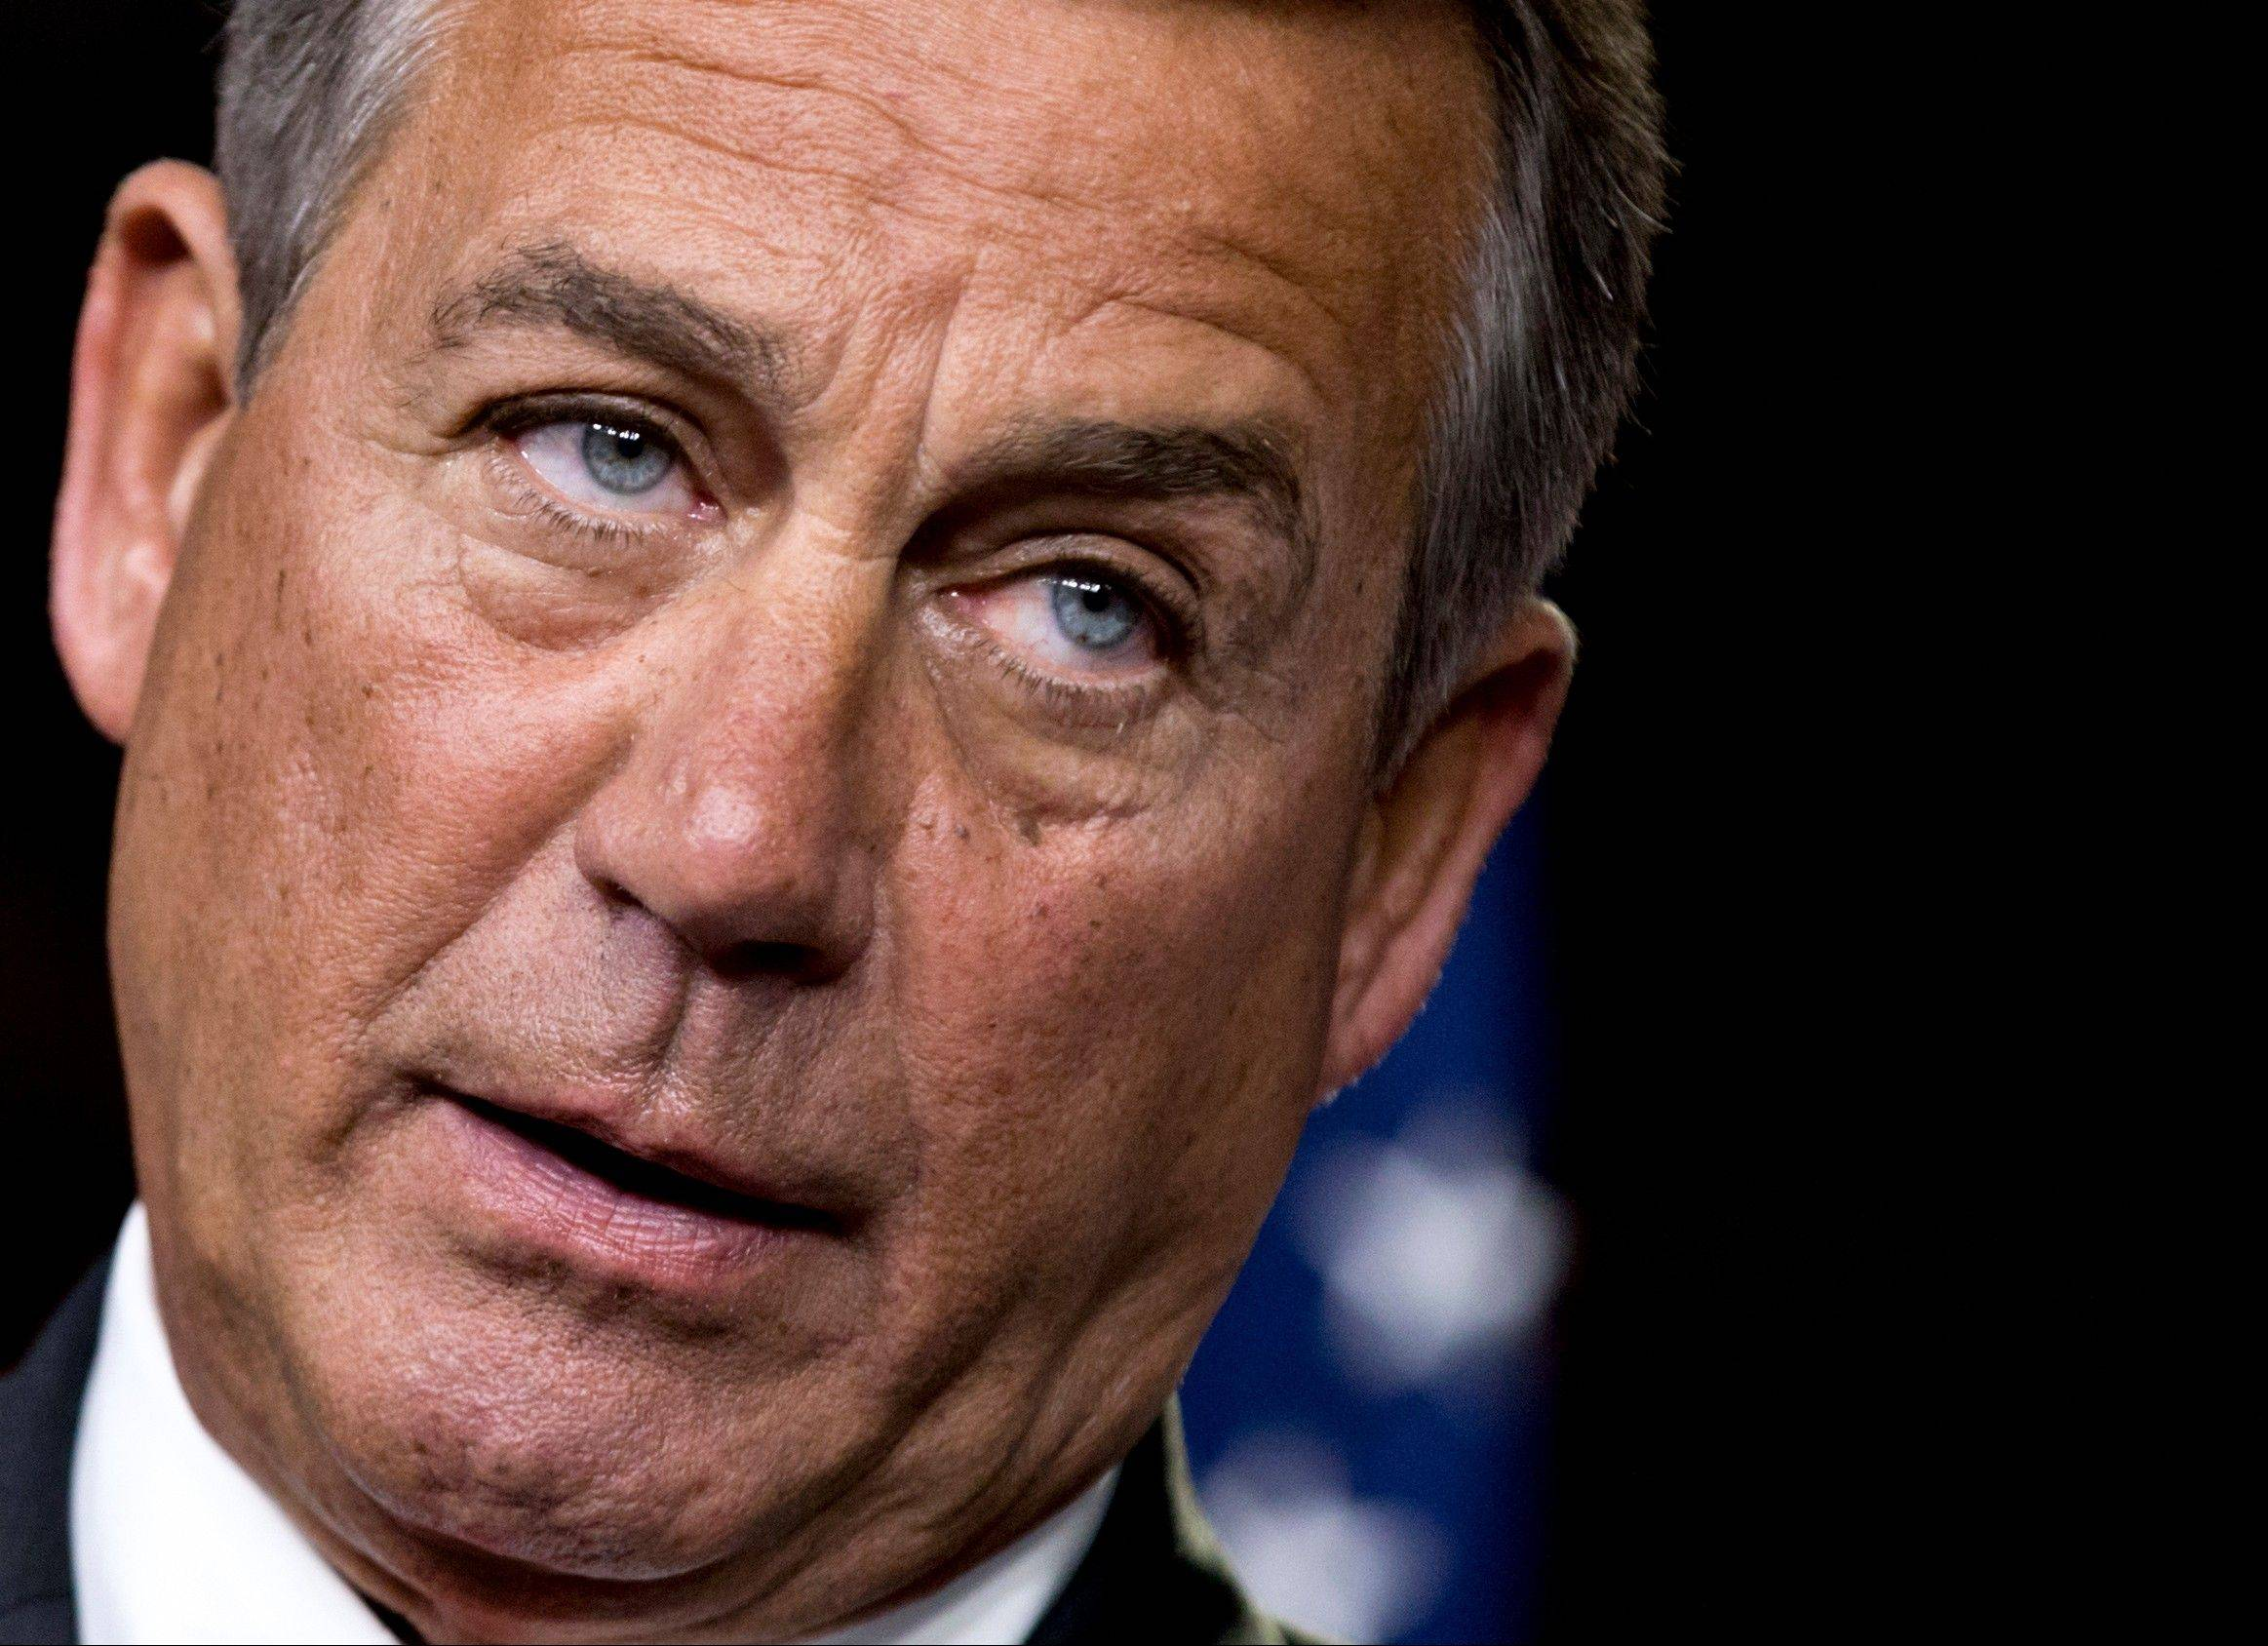 House Speaker John Boehner has taken plum committee assignments away from four conservative Republican lawmakers after they bucked party leaders on key votes.